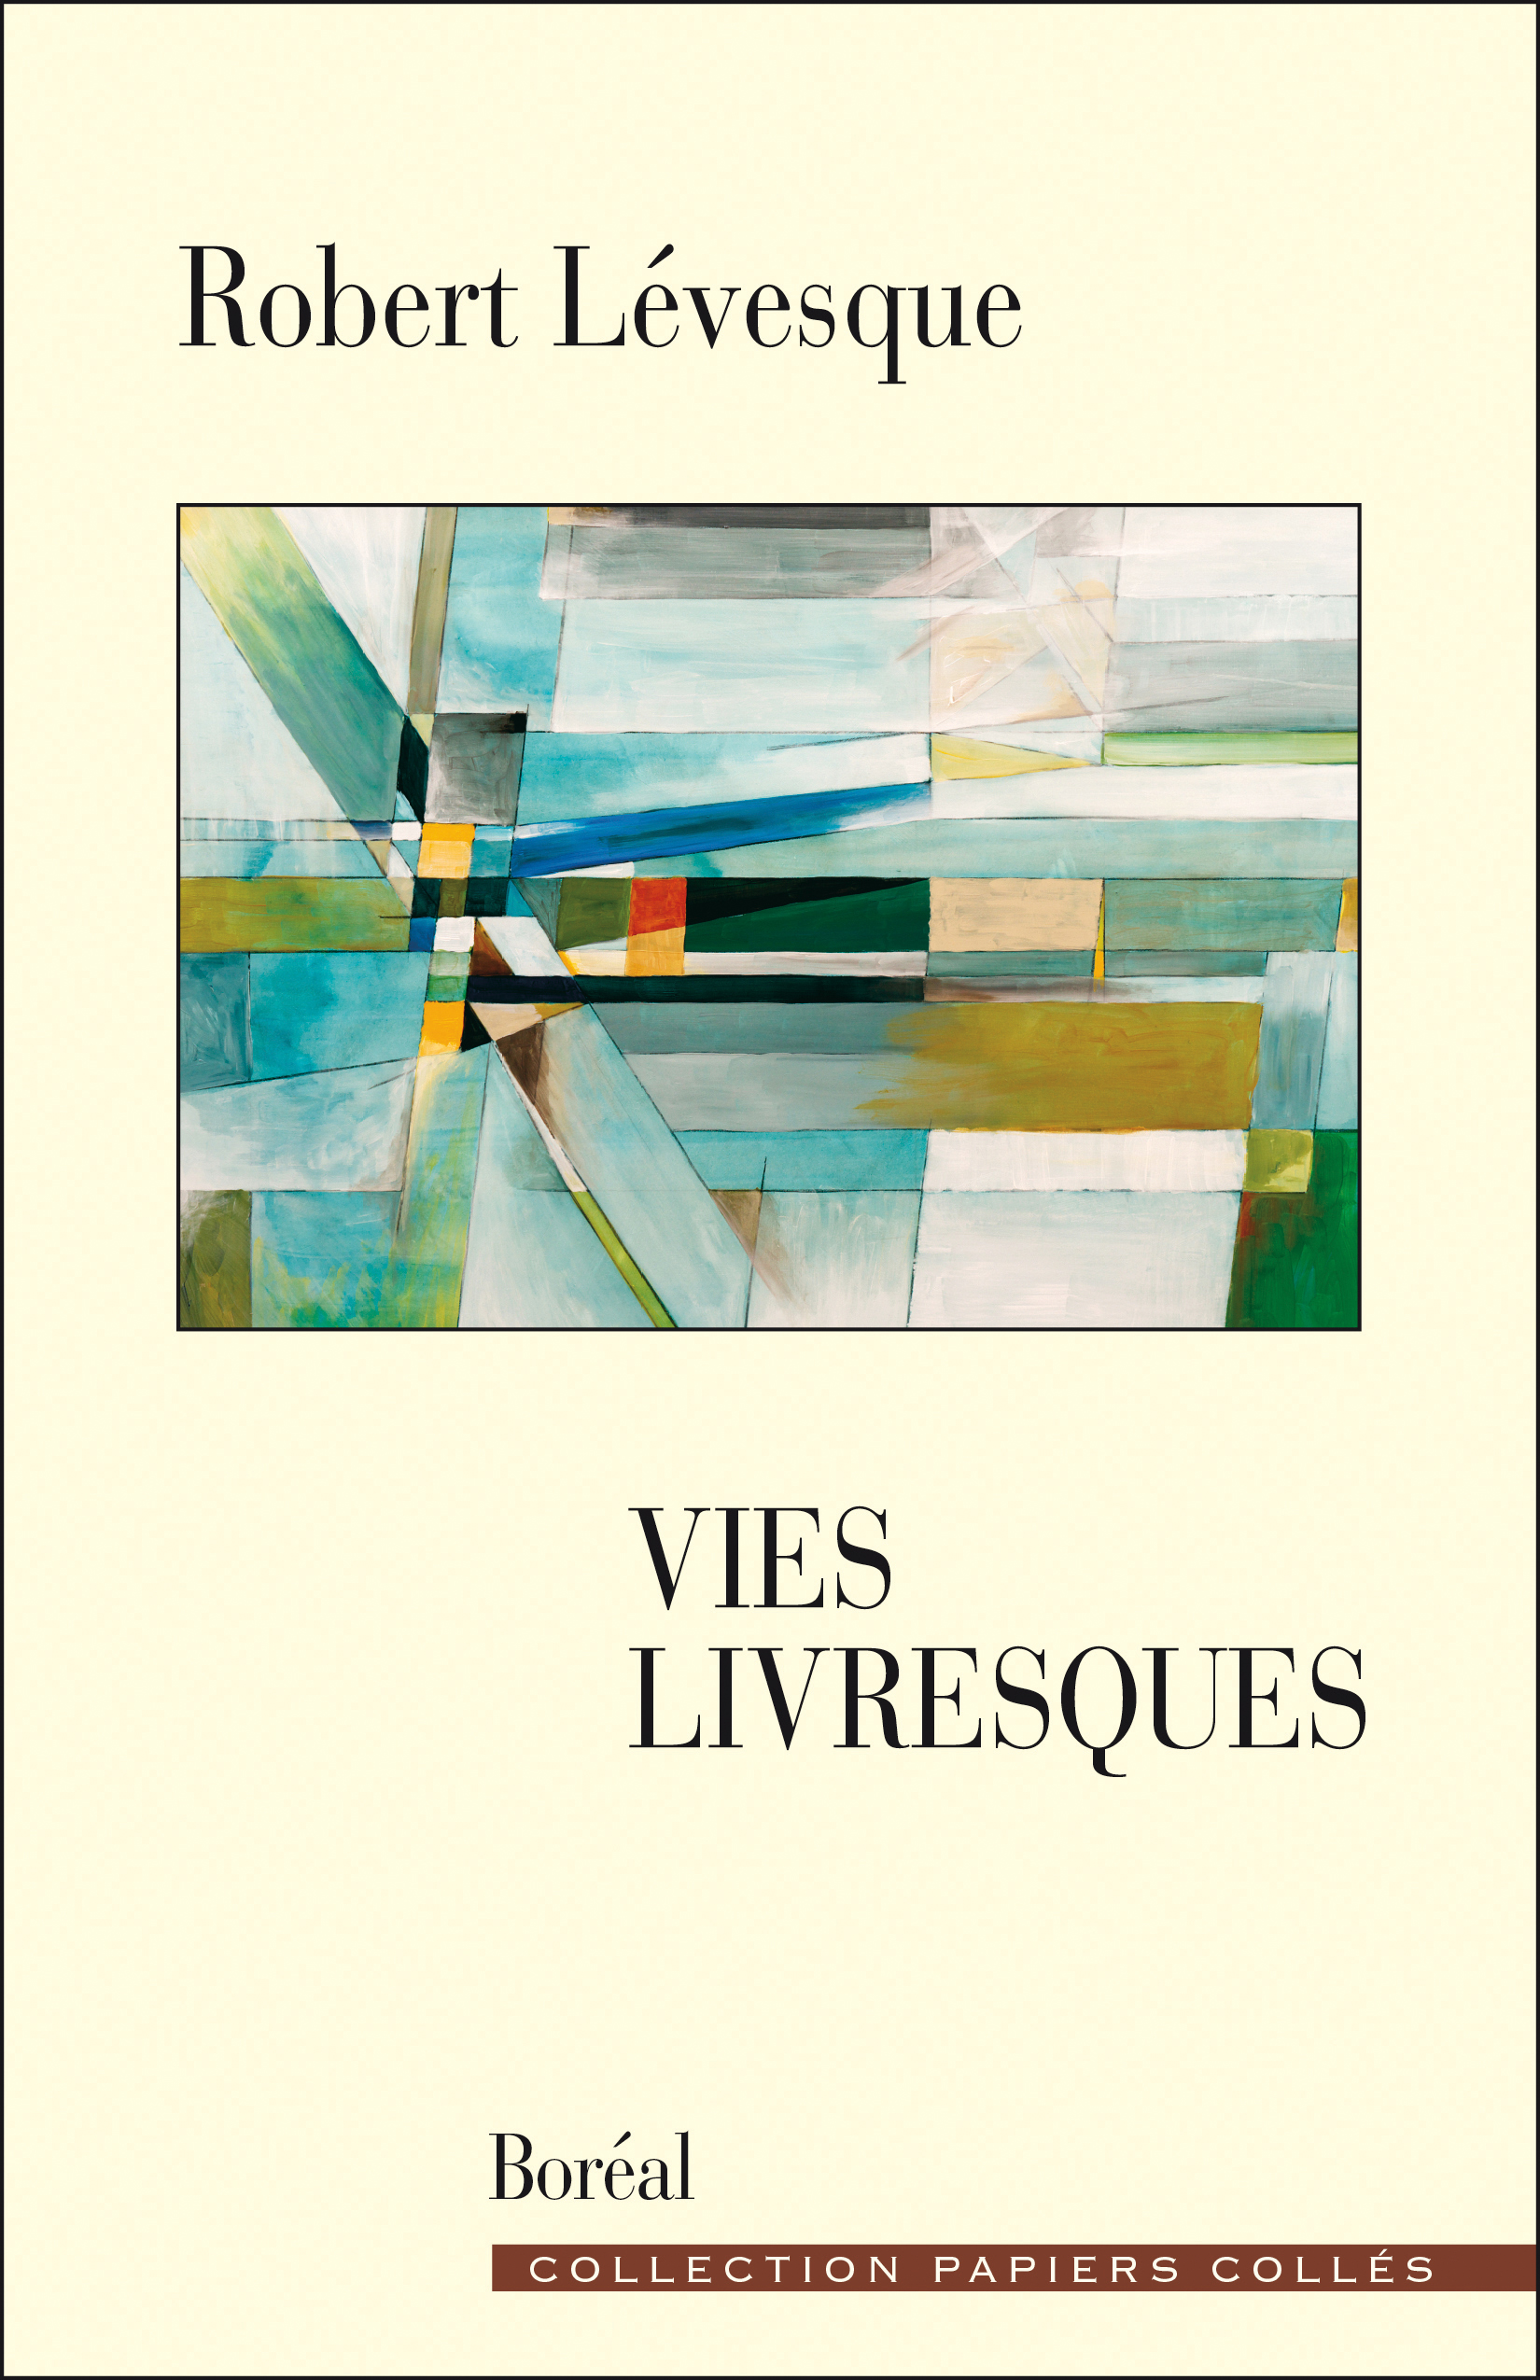 Vies livresques - Robert Lévesque